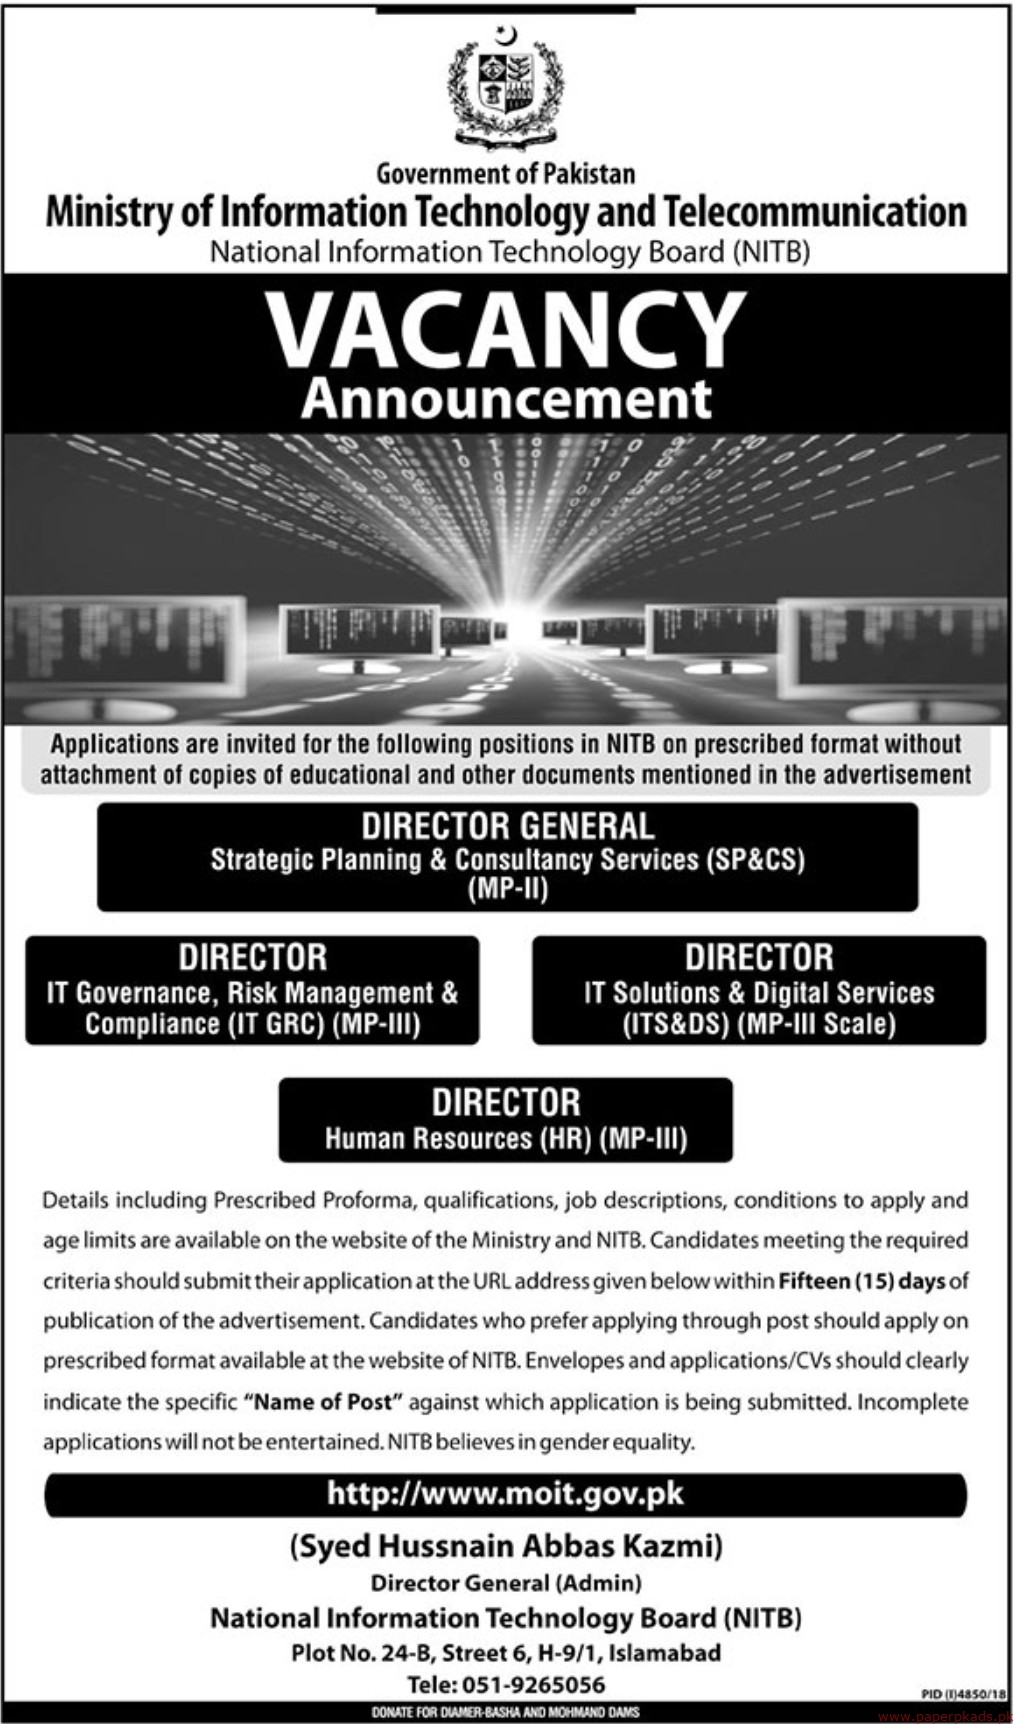 Government of Pakistan - National Information Technology Board NITB Jobs 2019 Latest